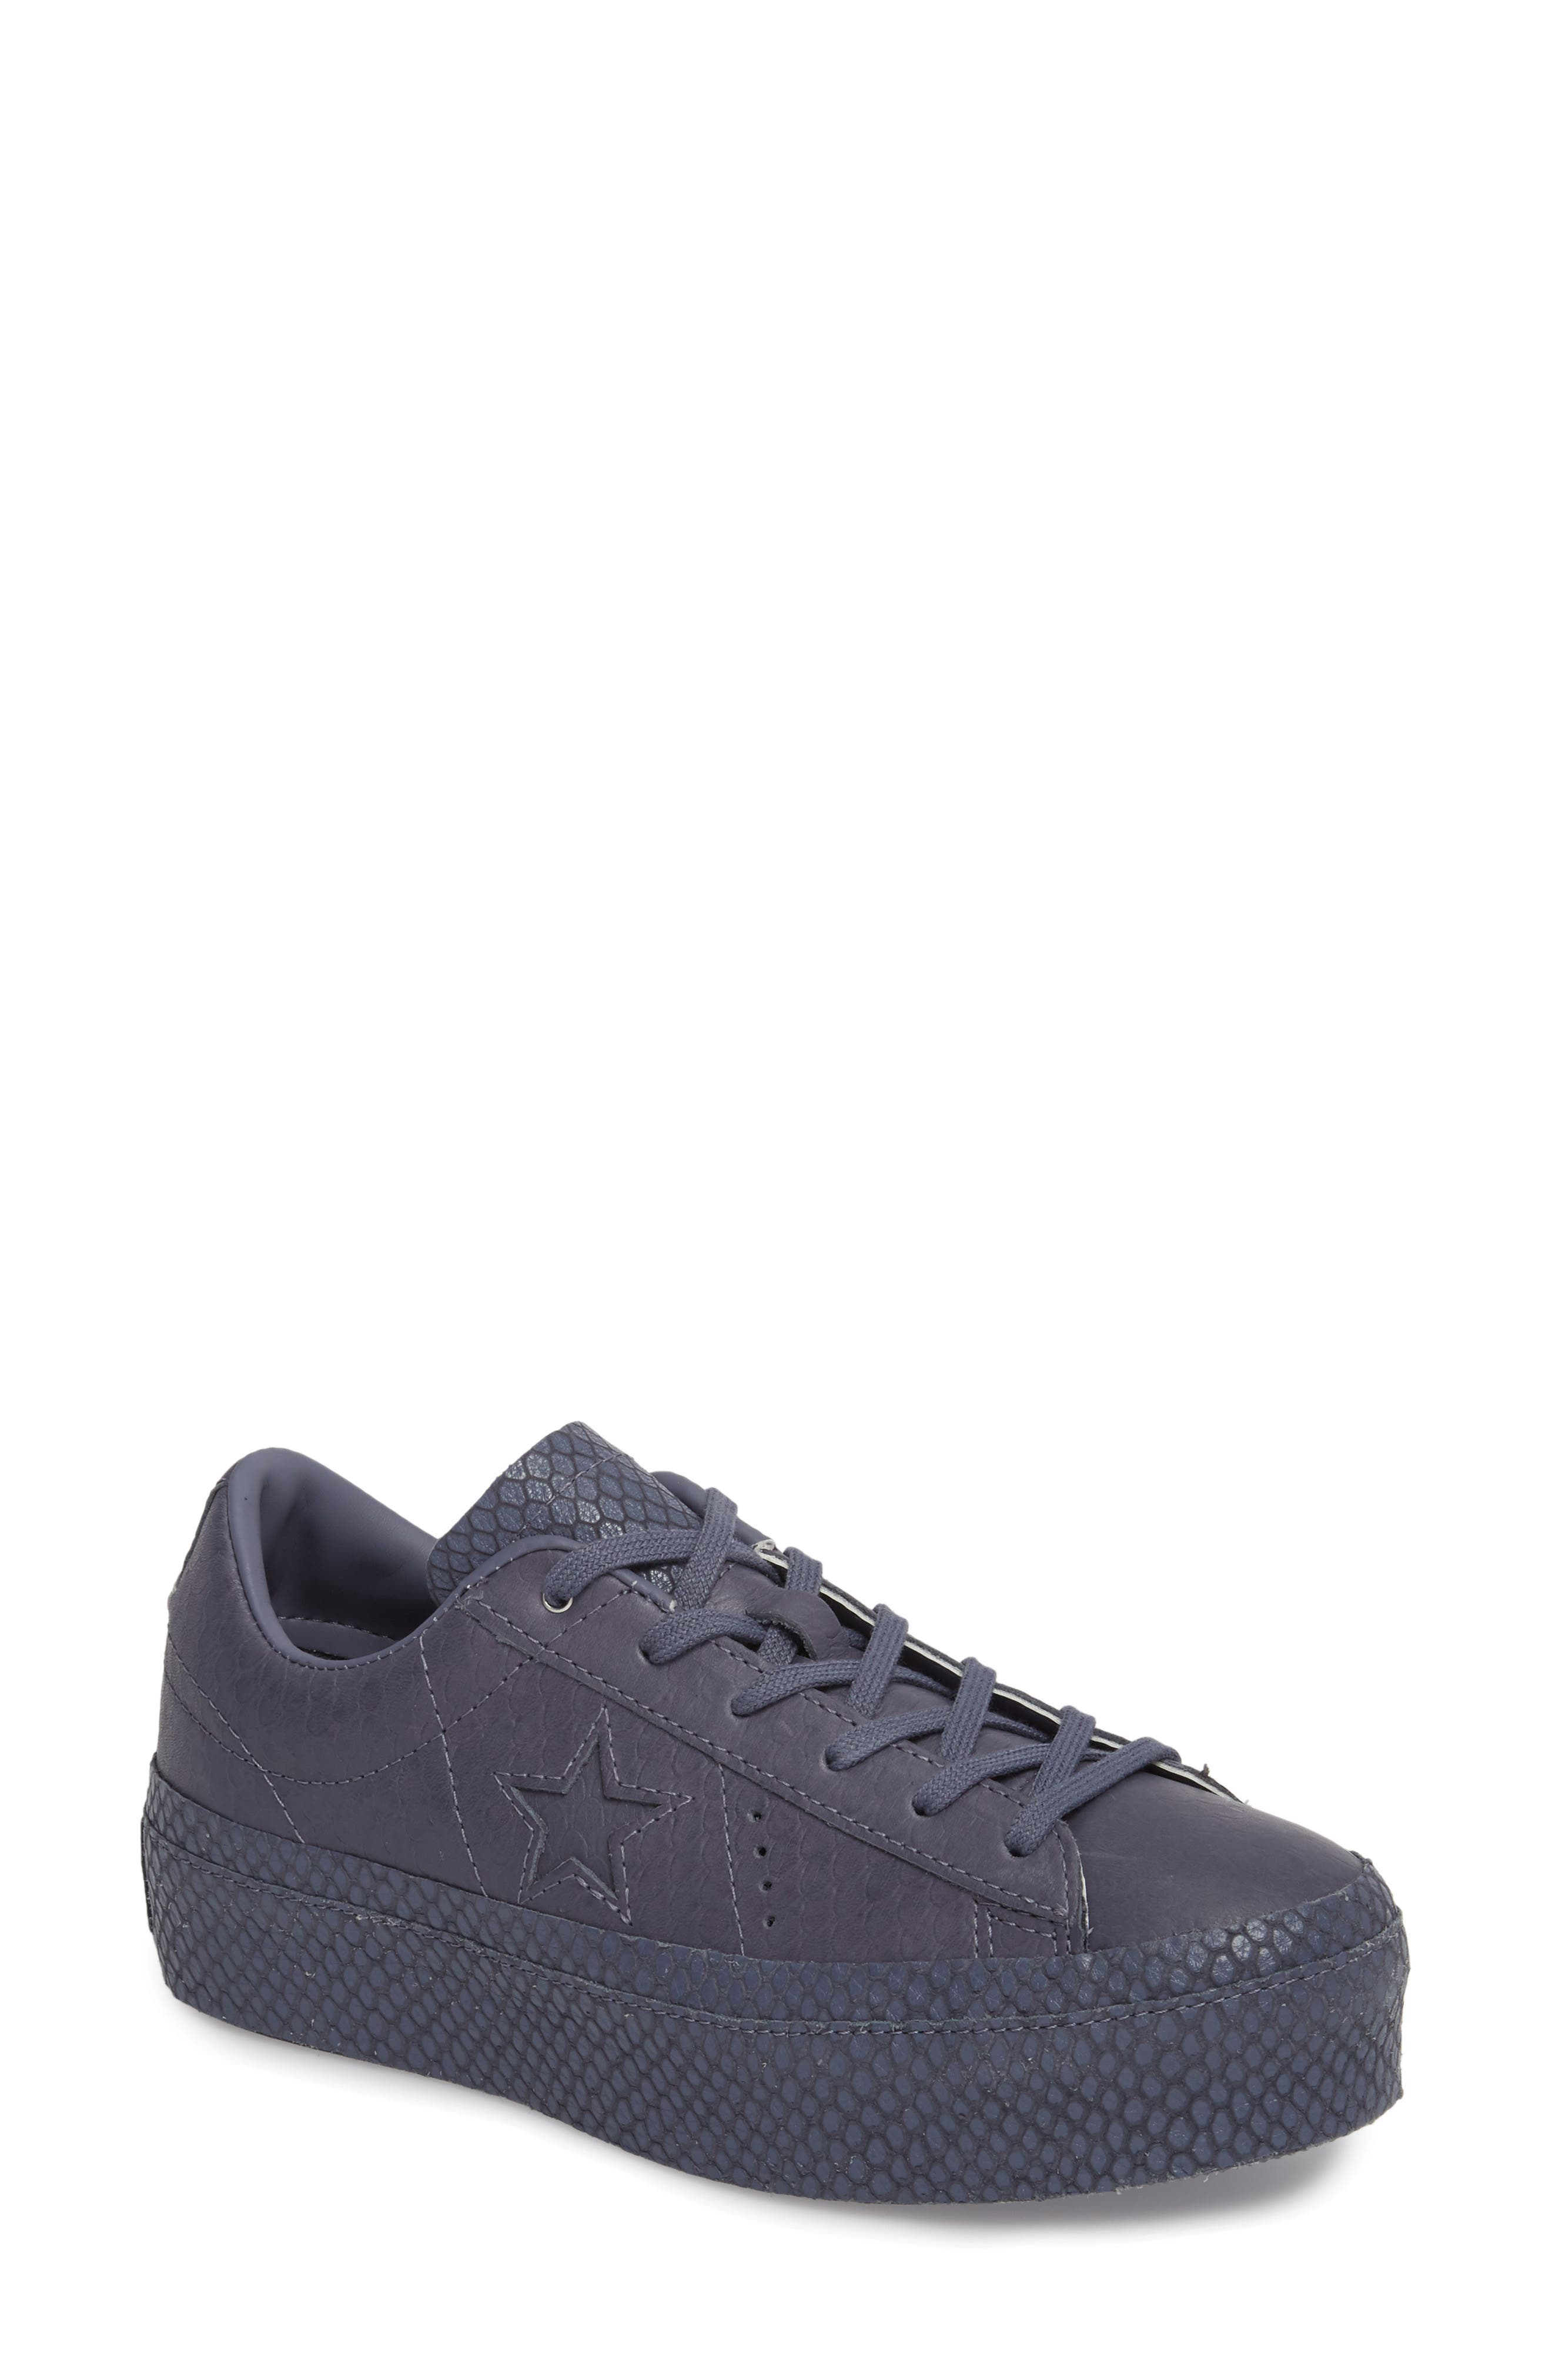 Chuck Taylor<sup>®</sup> All Star<sup>®</sup> One Star Platform Sneaker,                         Main,                         color, 450